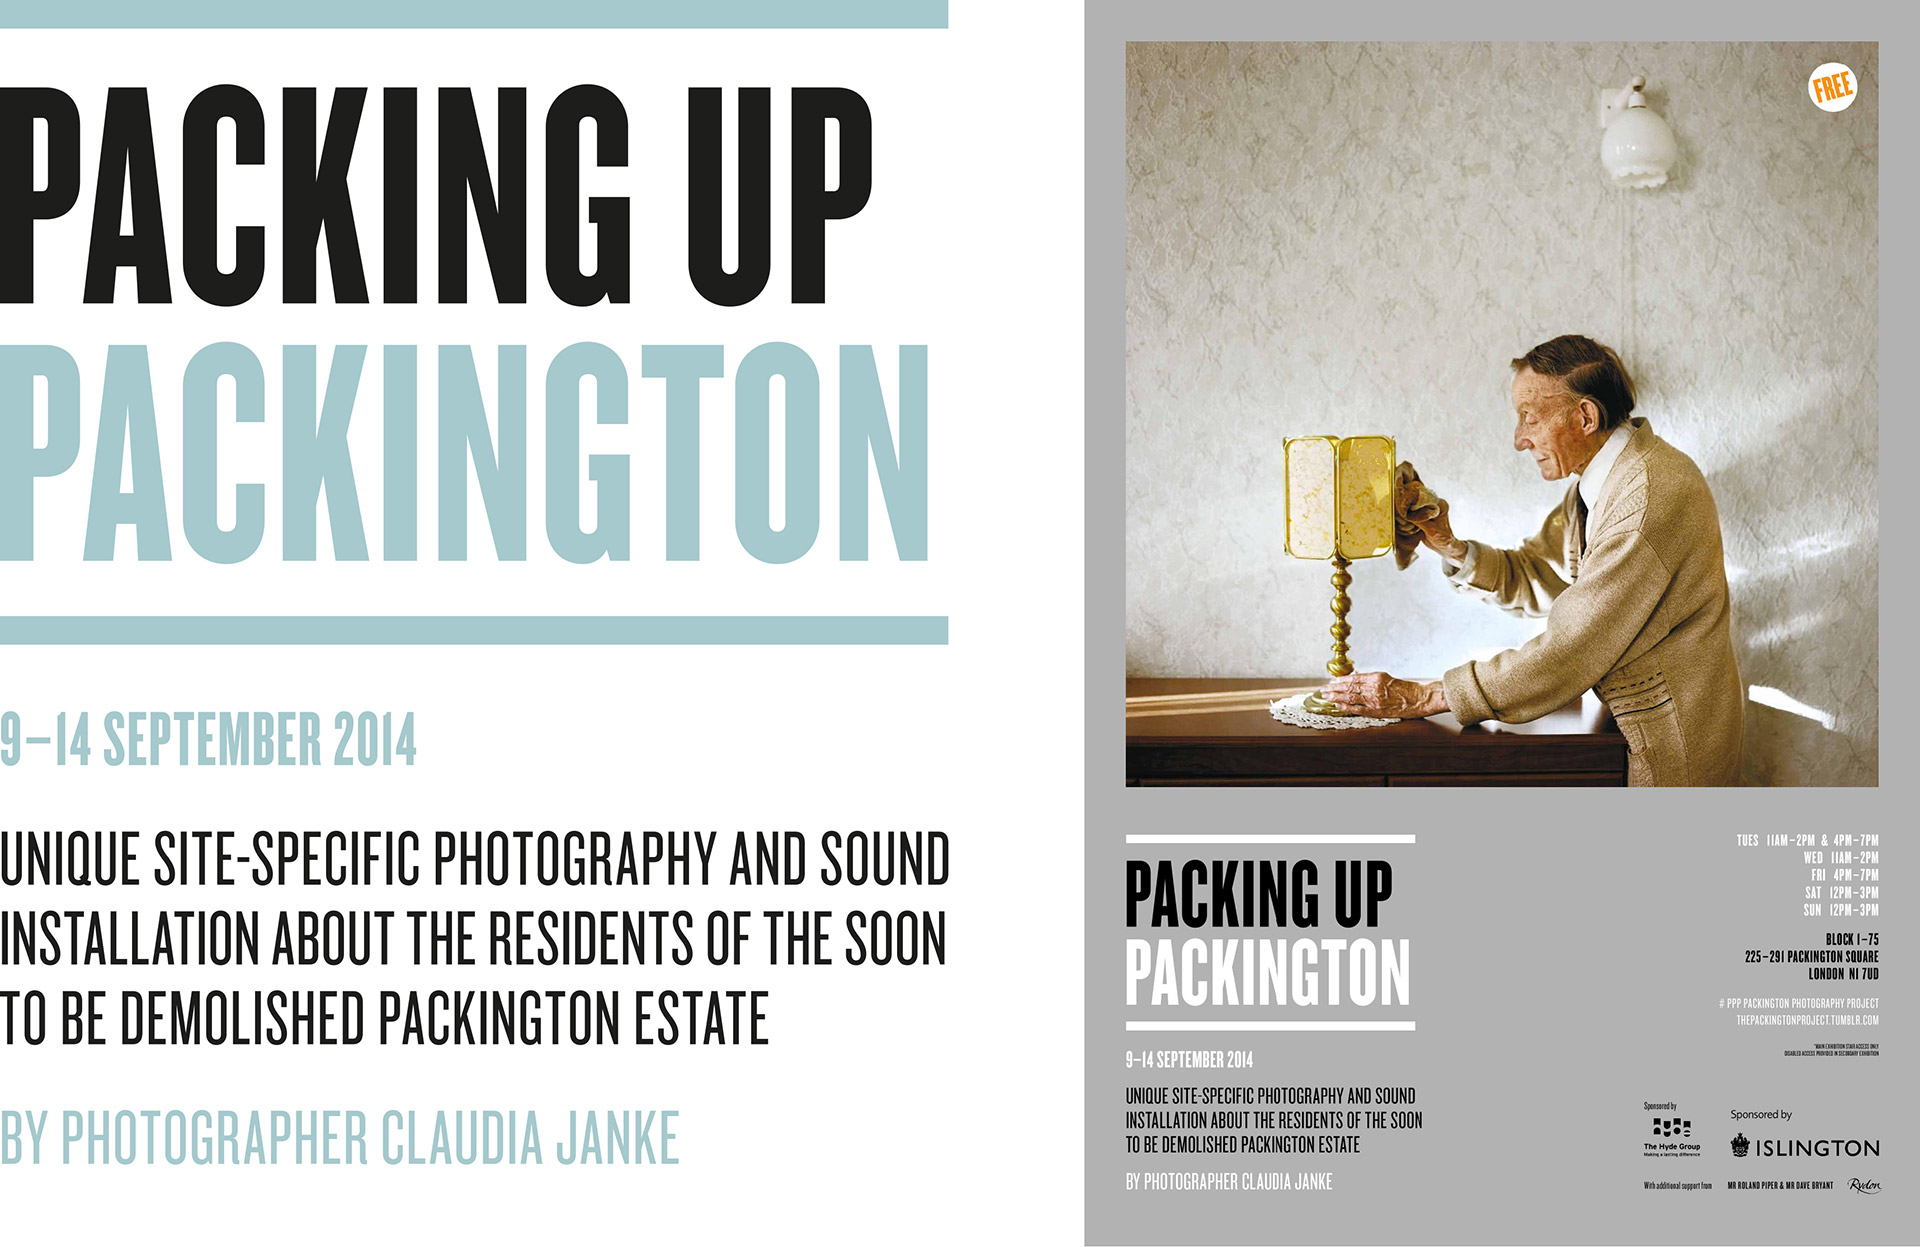 Packing up Packington designed by Irish Butcher